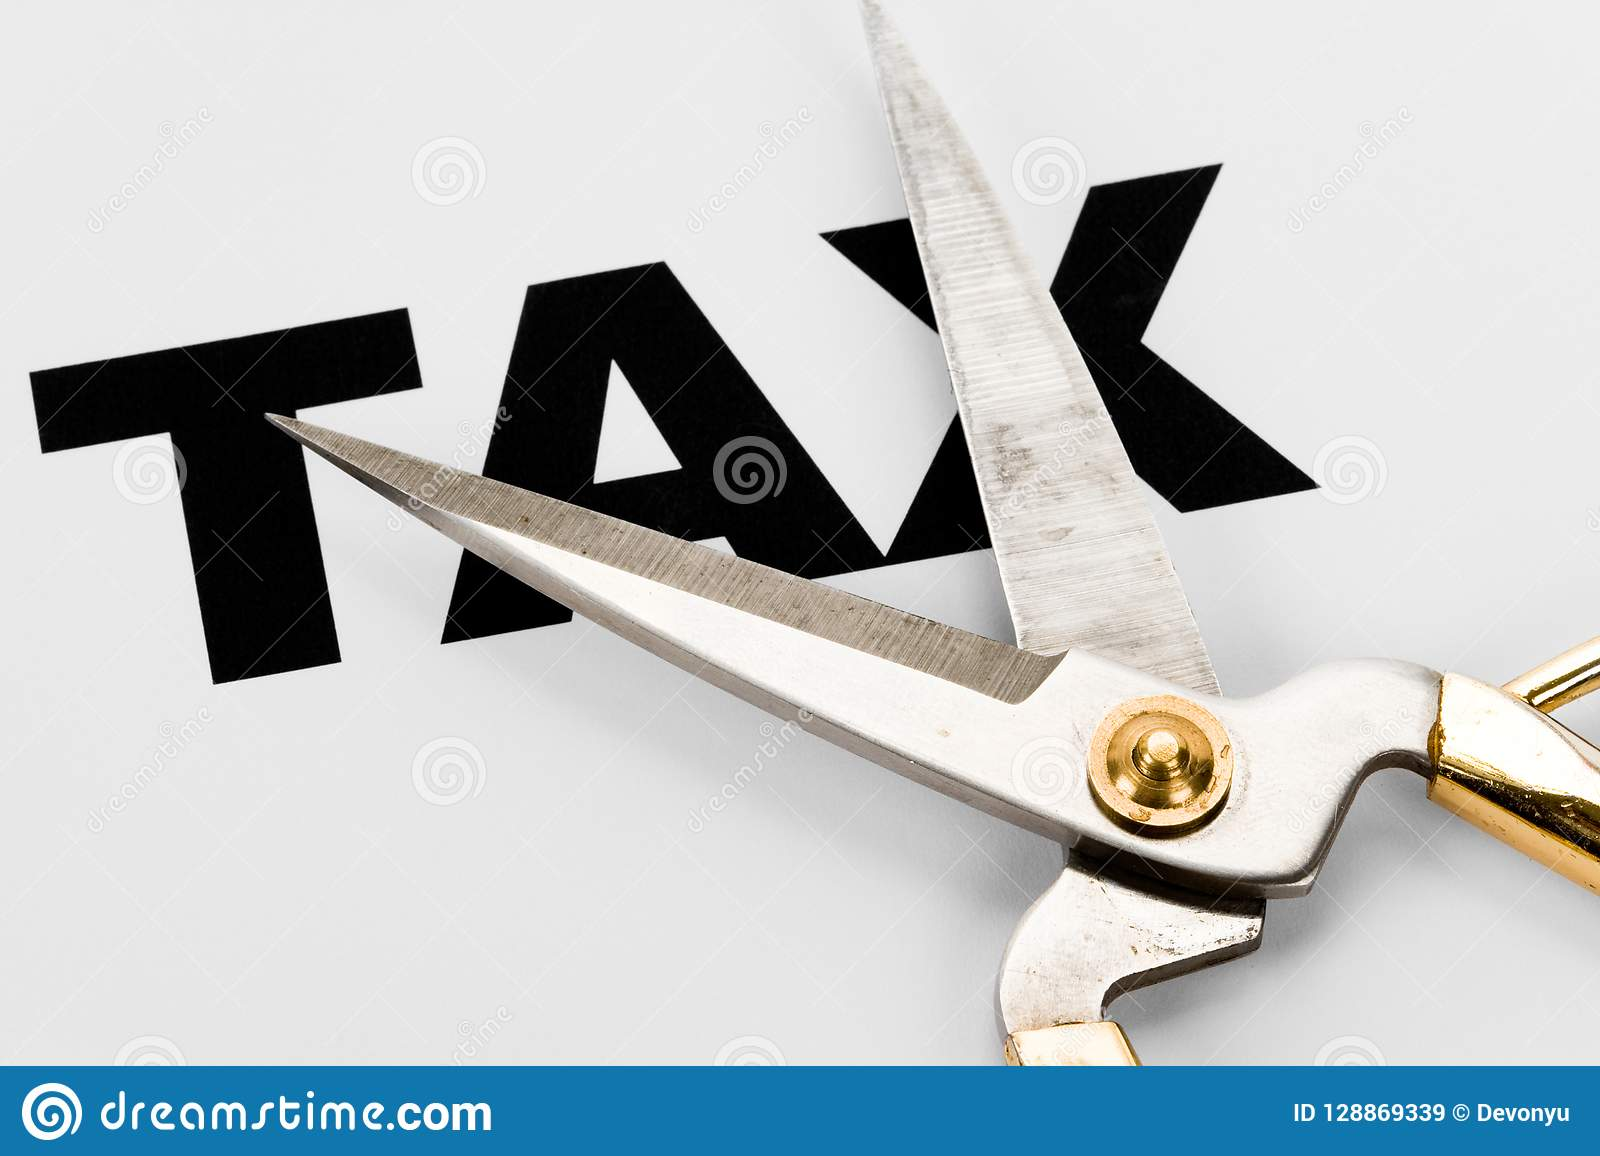 Tax cut concept to reduce taxes paying less vector illustration.